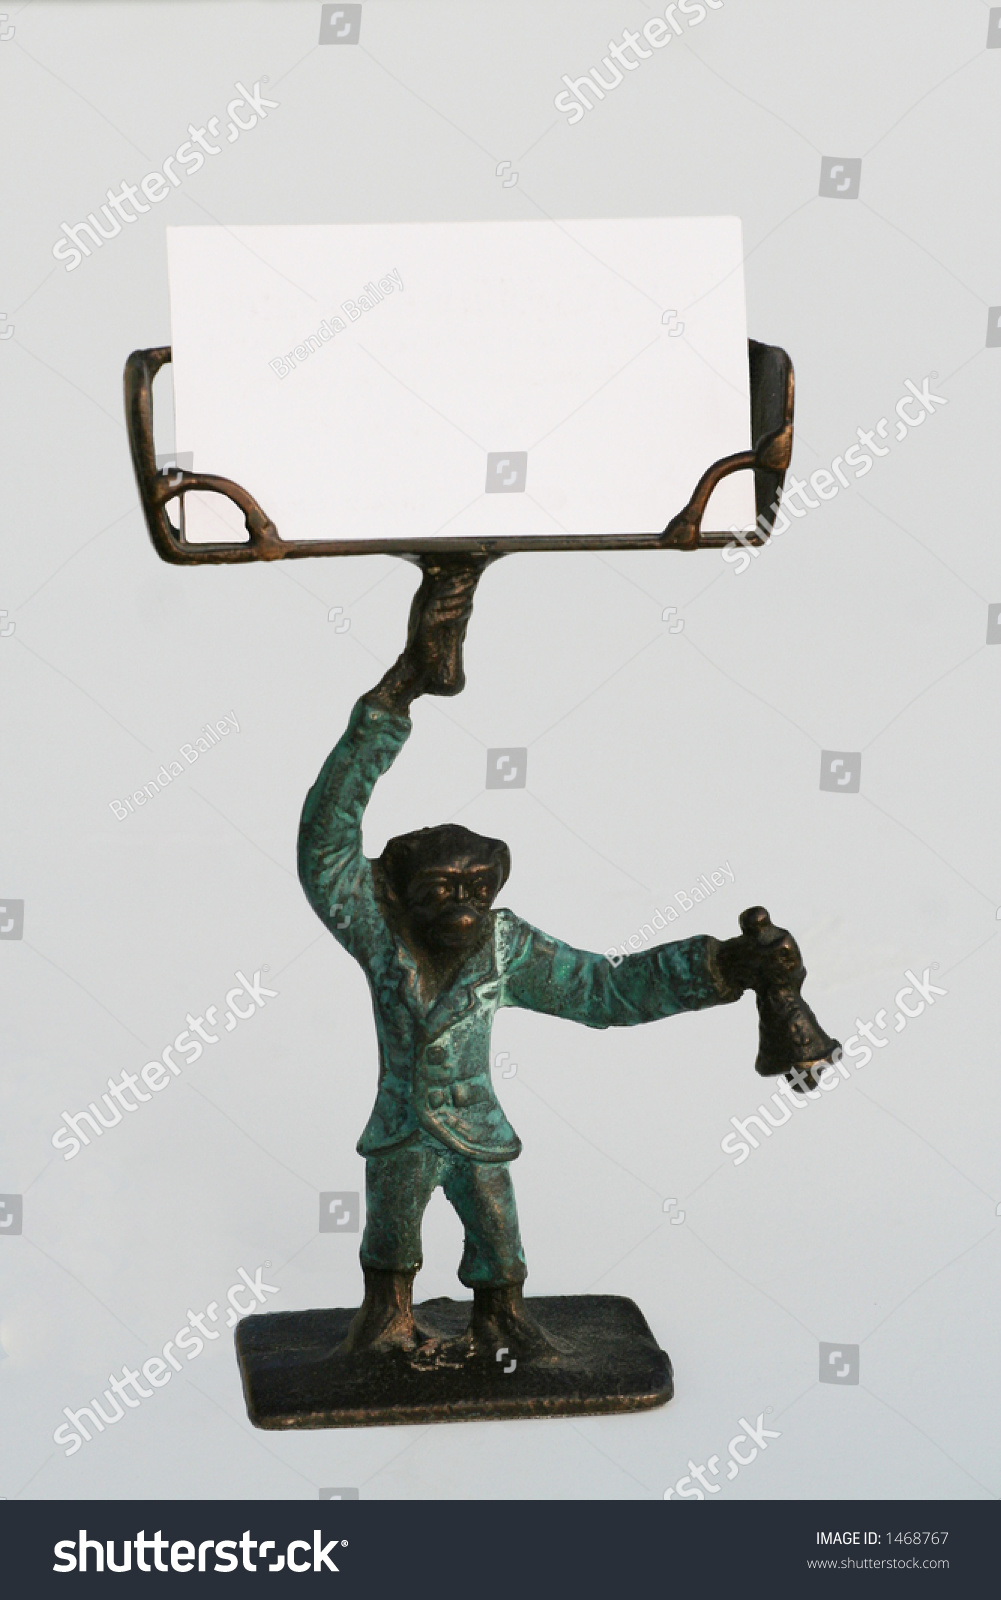 Monkey Business Card Holder Stock Photo 1468767 - Shutterstock